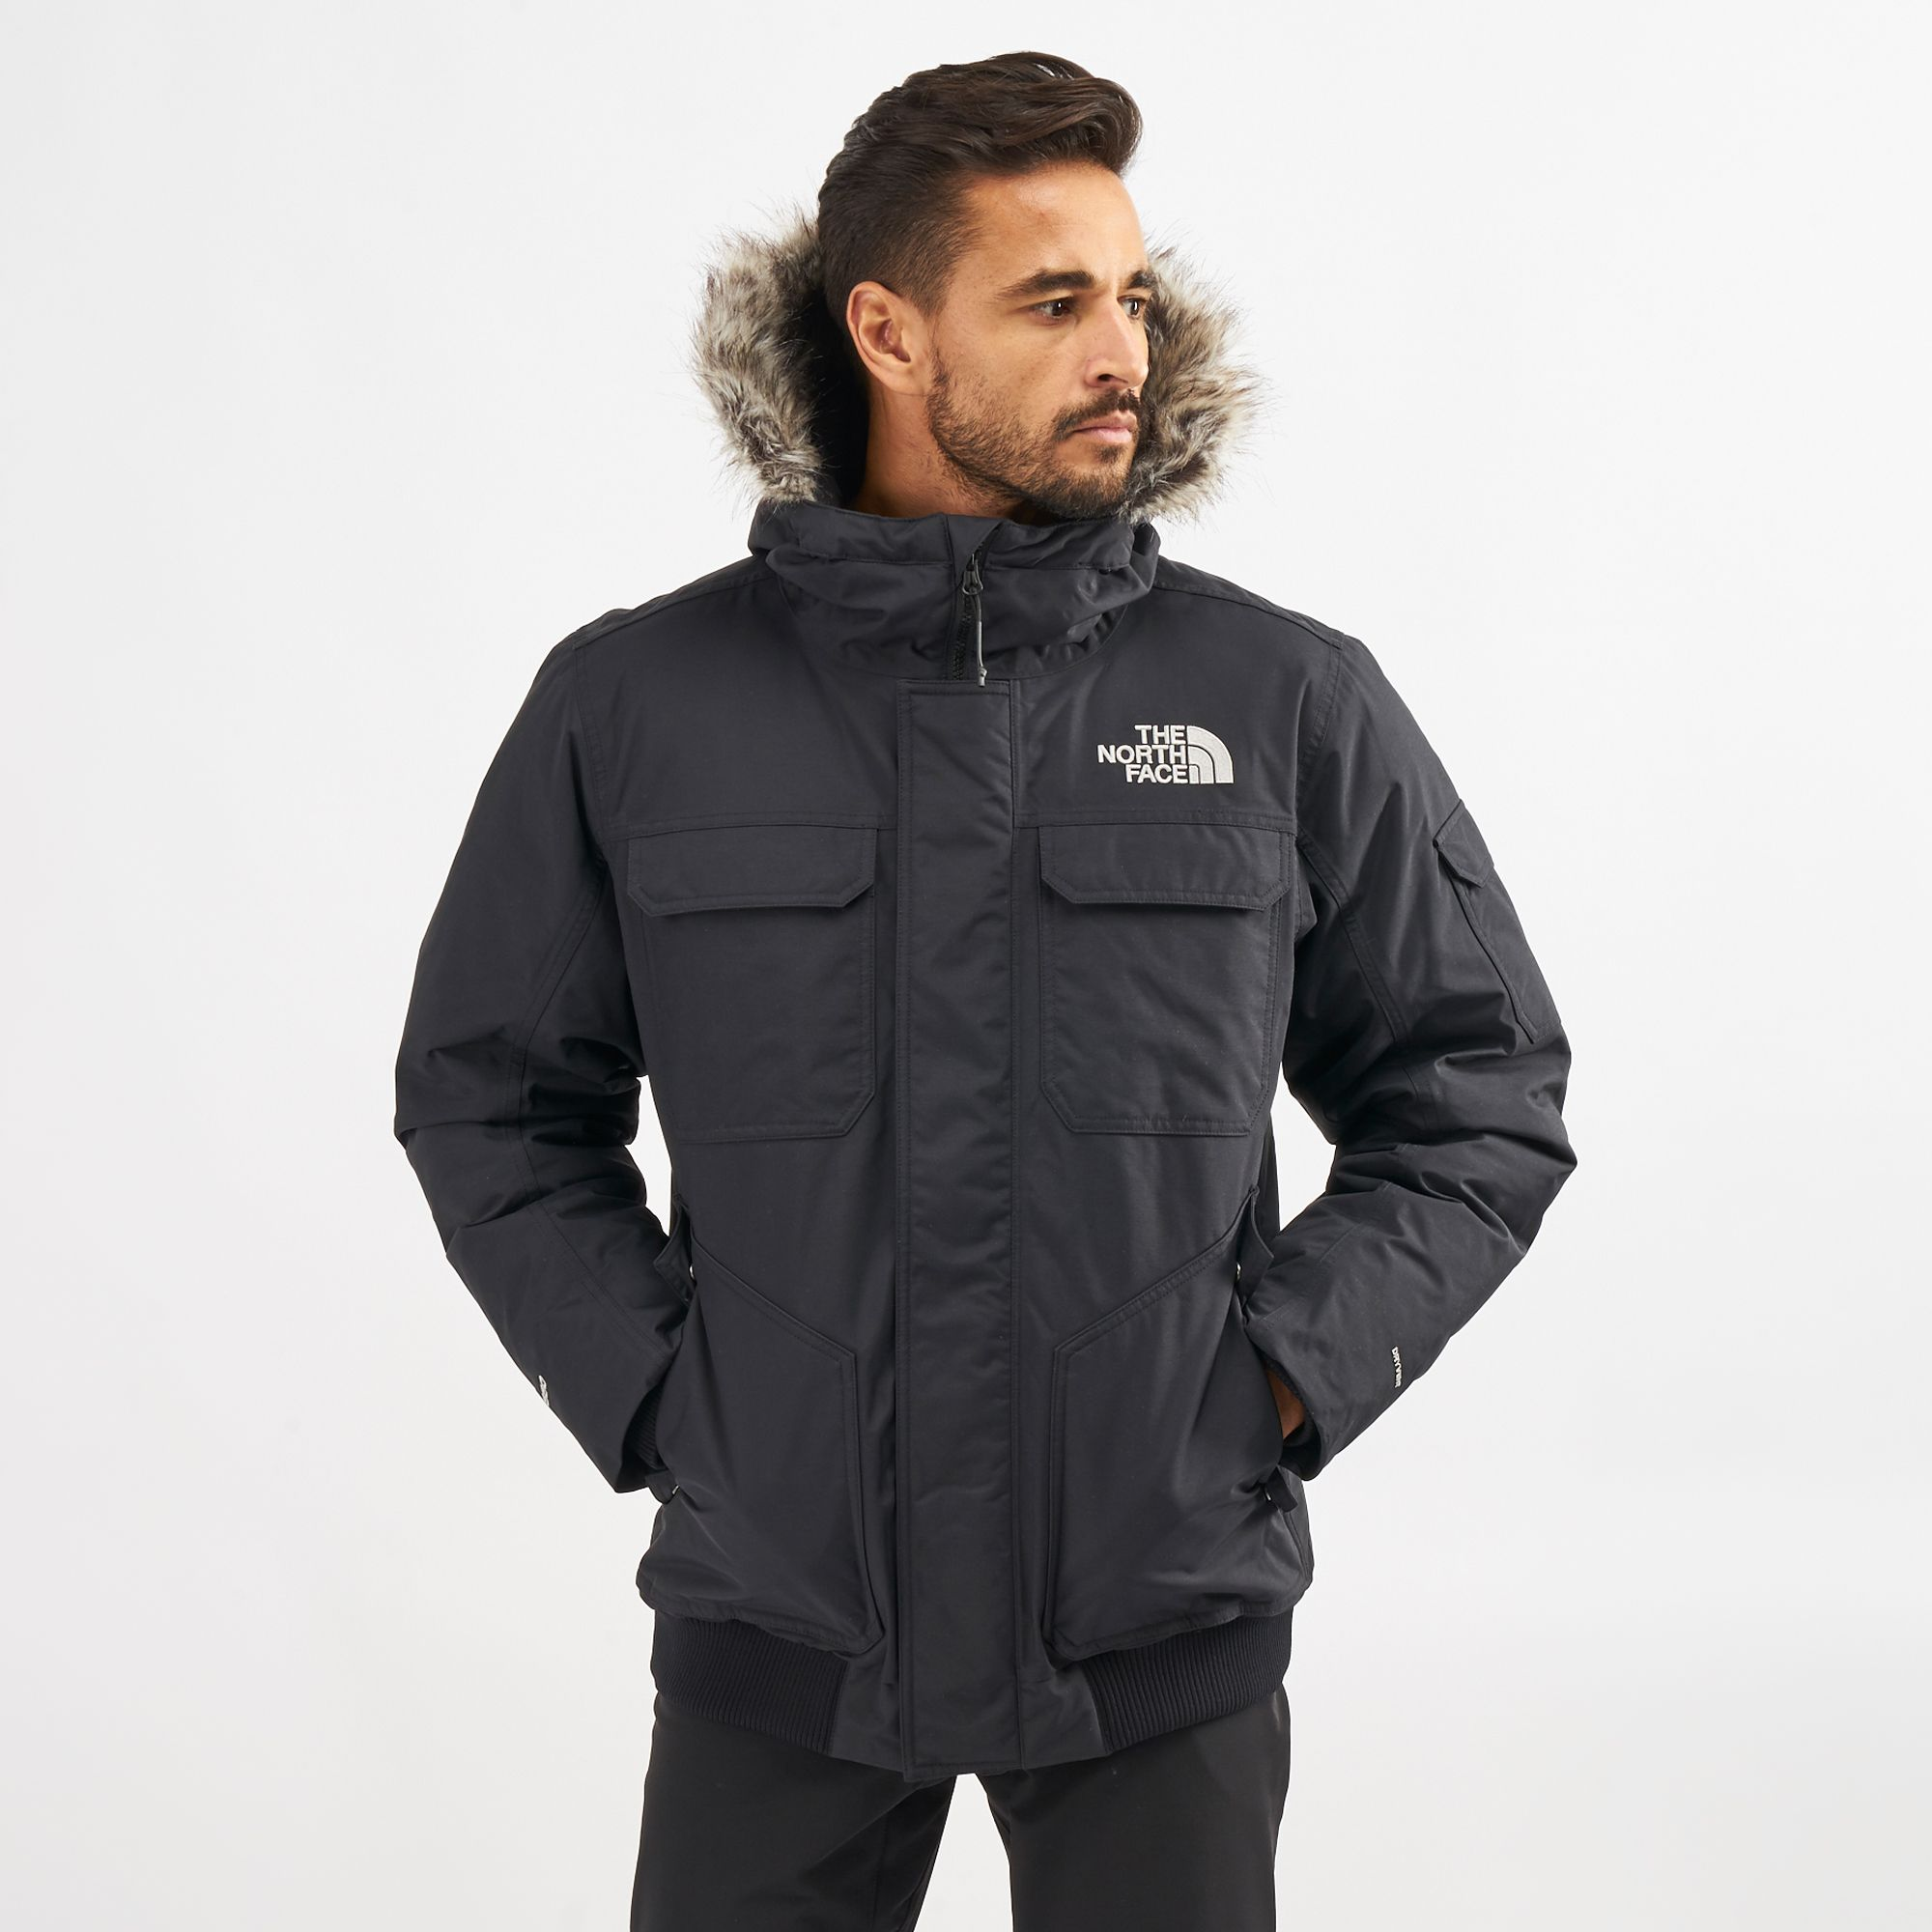 The North Face Gotham Jacket 3  680e4588f